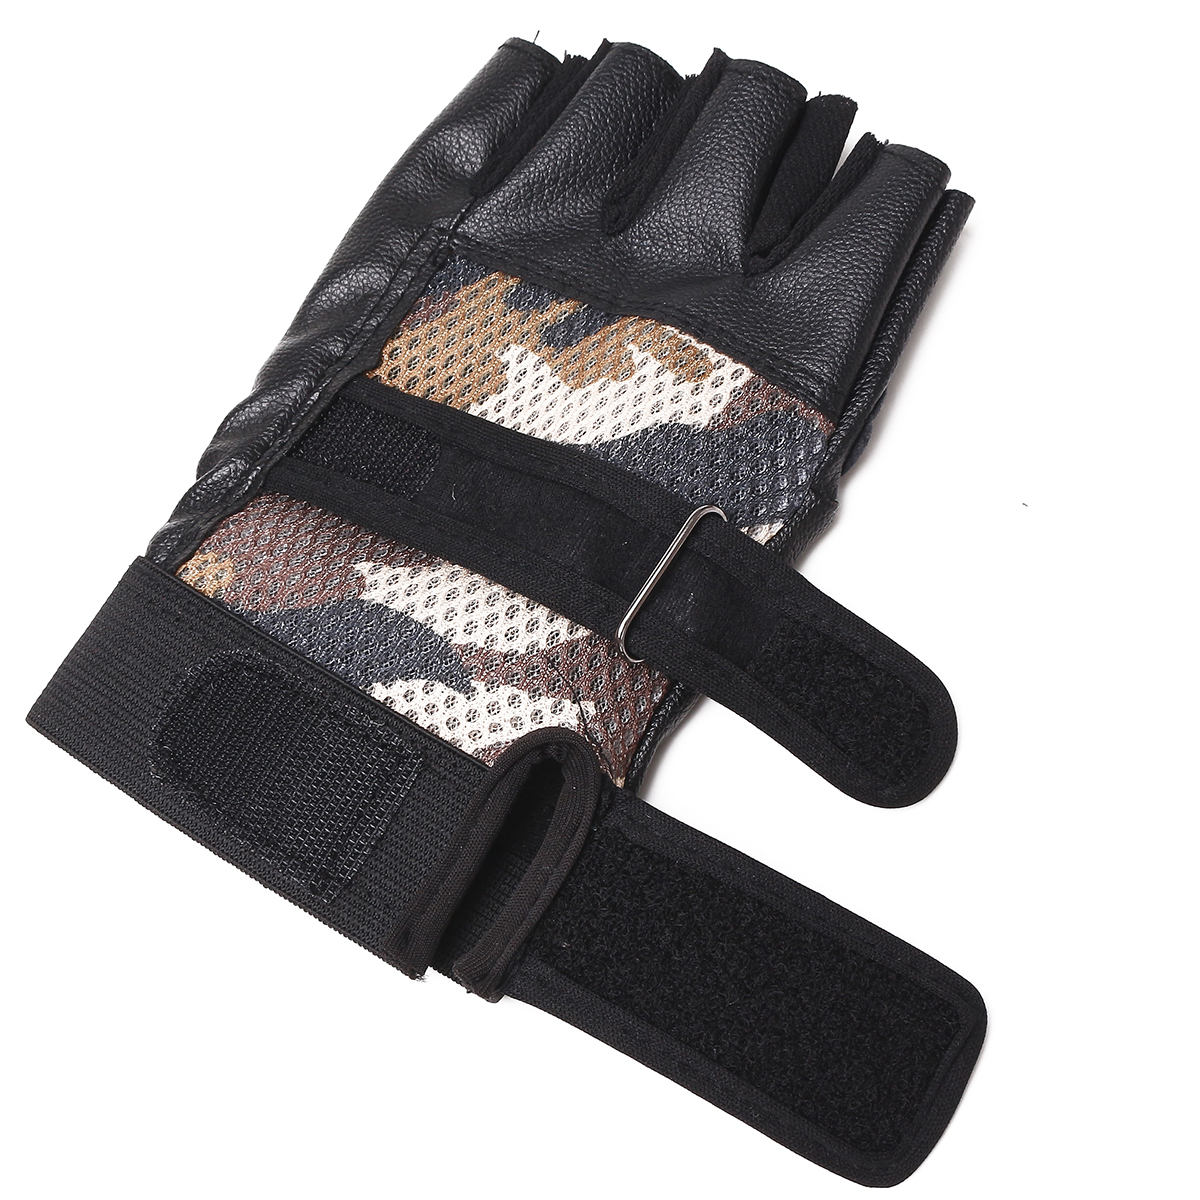 Unisex Mesh Artificial Leather Cycling Outdoor Gloves Gym Fitness Wrist Support Wraps Bike Mittens